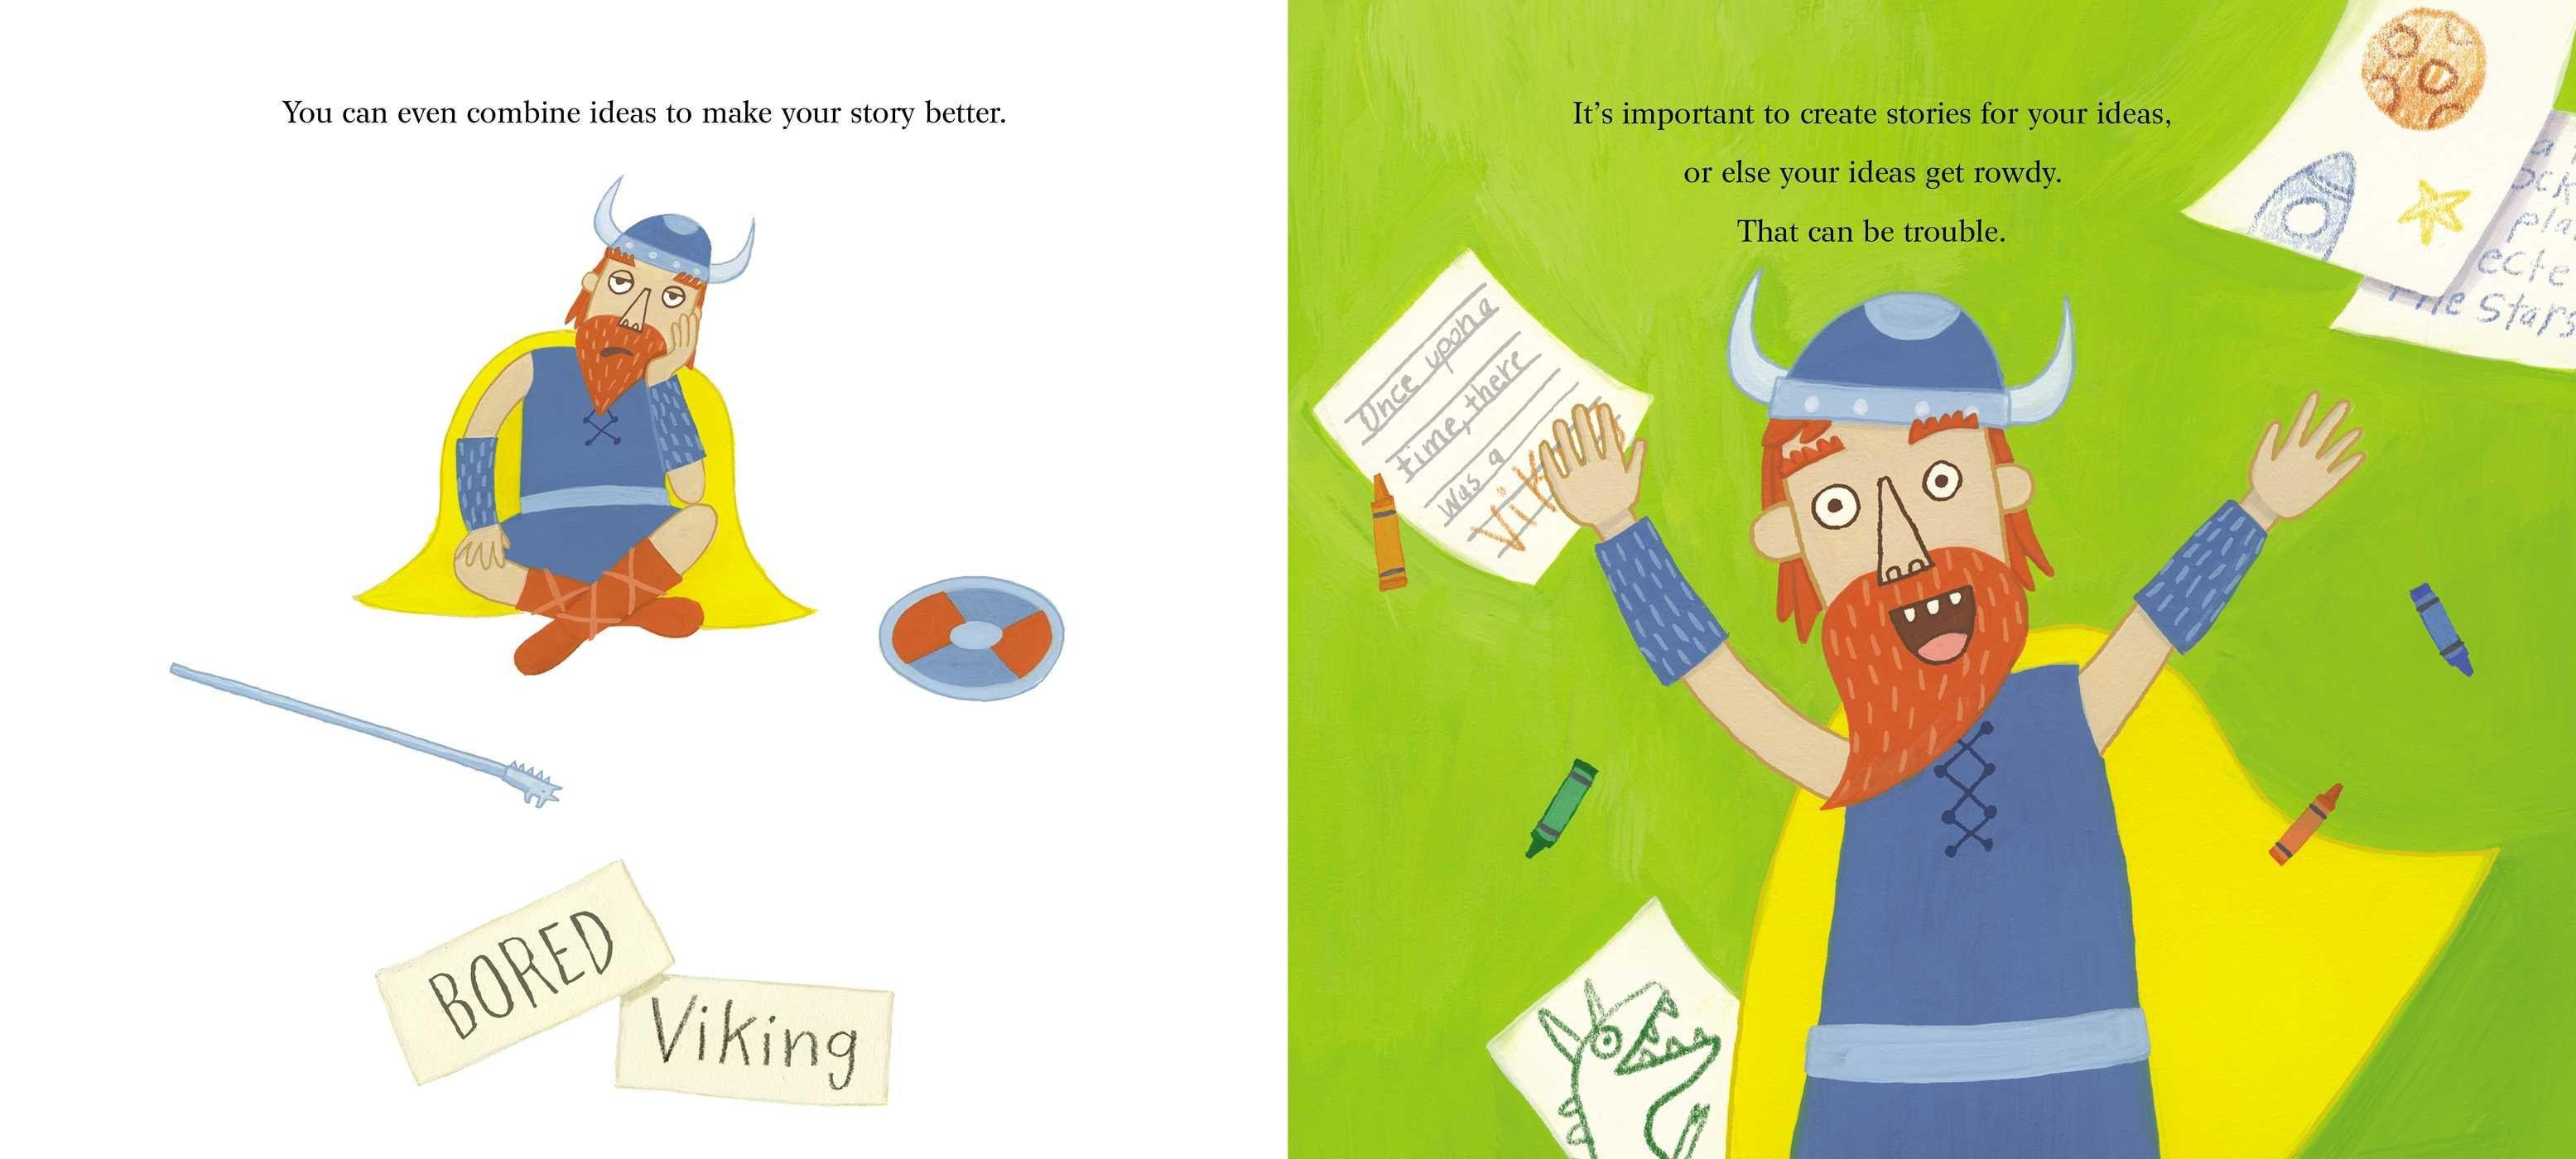 celebrate-picture-books-picture-book-review-idea-jar-bored-viking